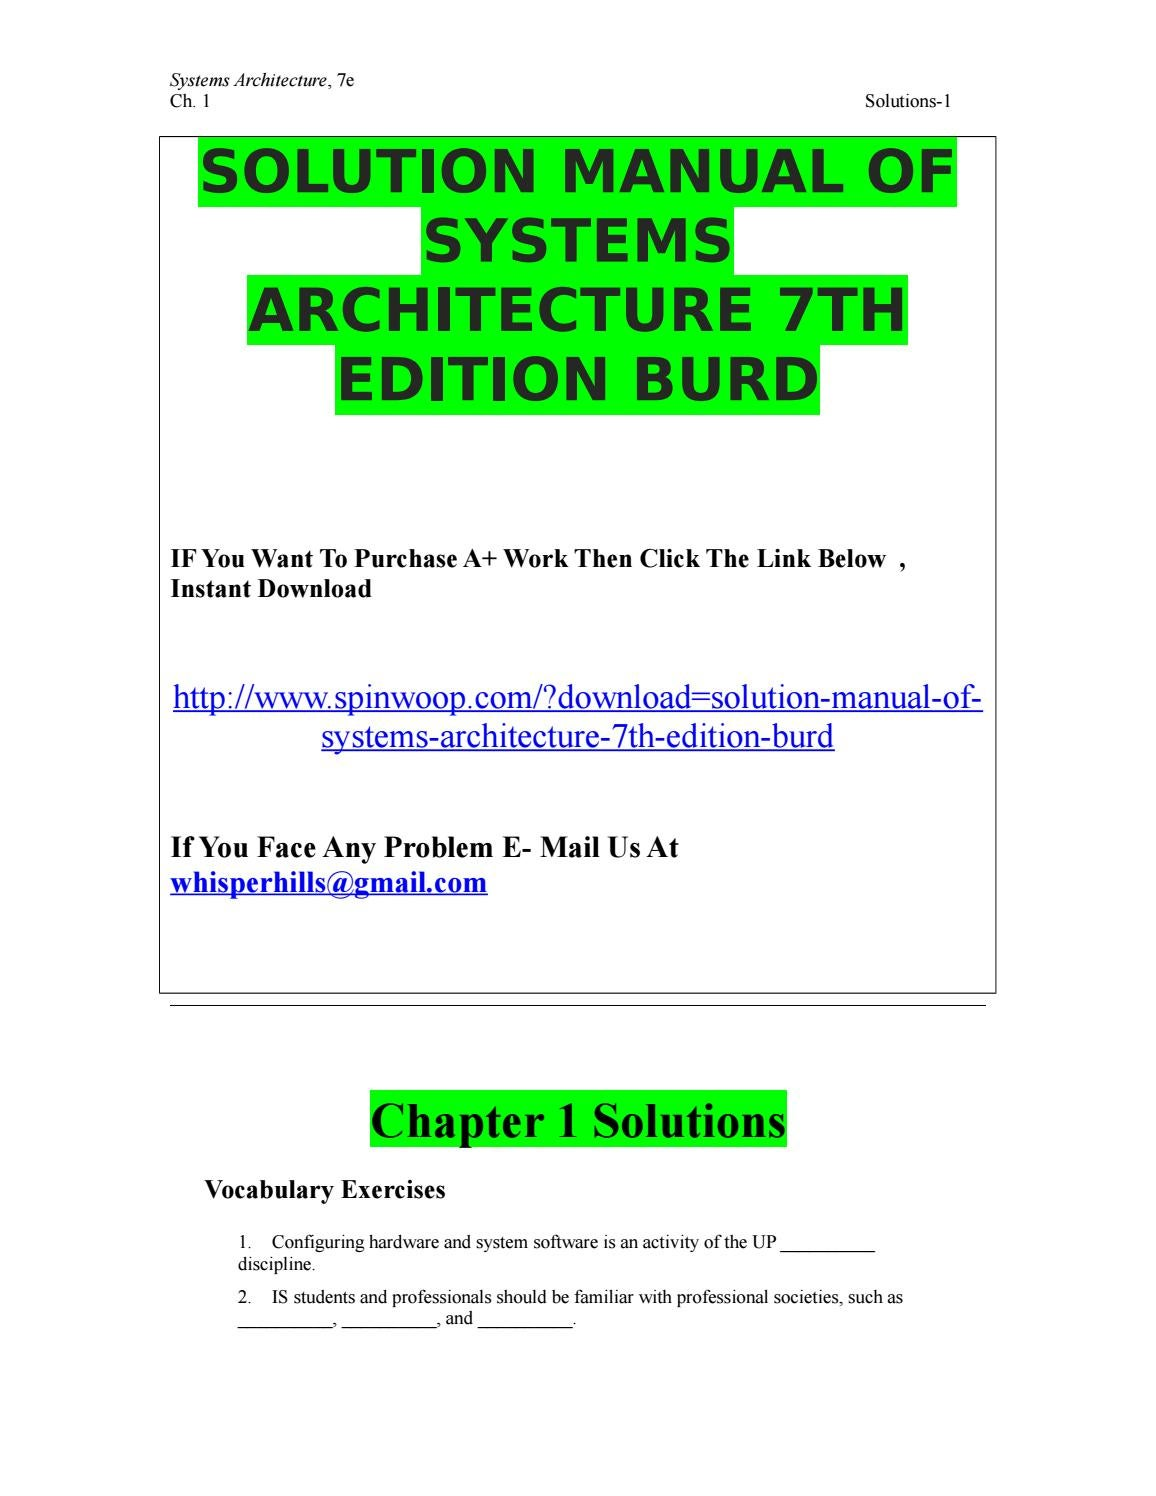 Solution manual of systems architecture 7th edition burd by asmacandy -  issuu